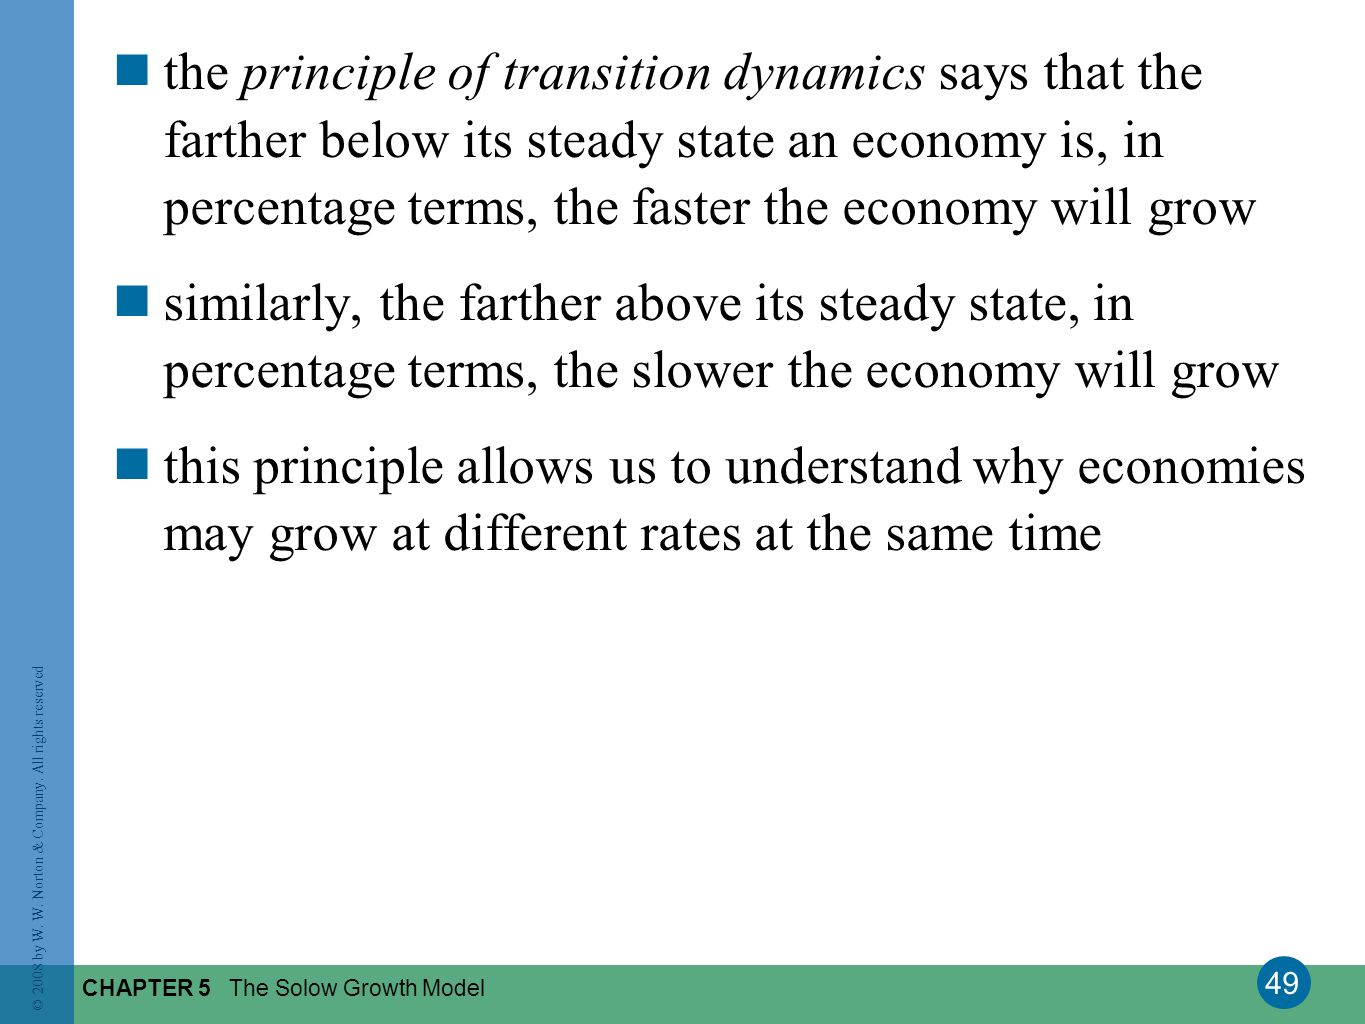 the principle of transition dynamics says that the farther below its steady state an economy is, in percentage terms, the faster the economy will grow